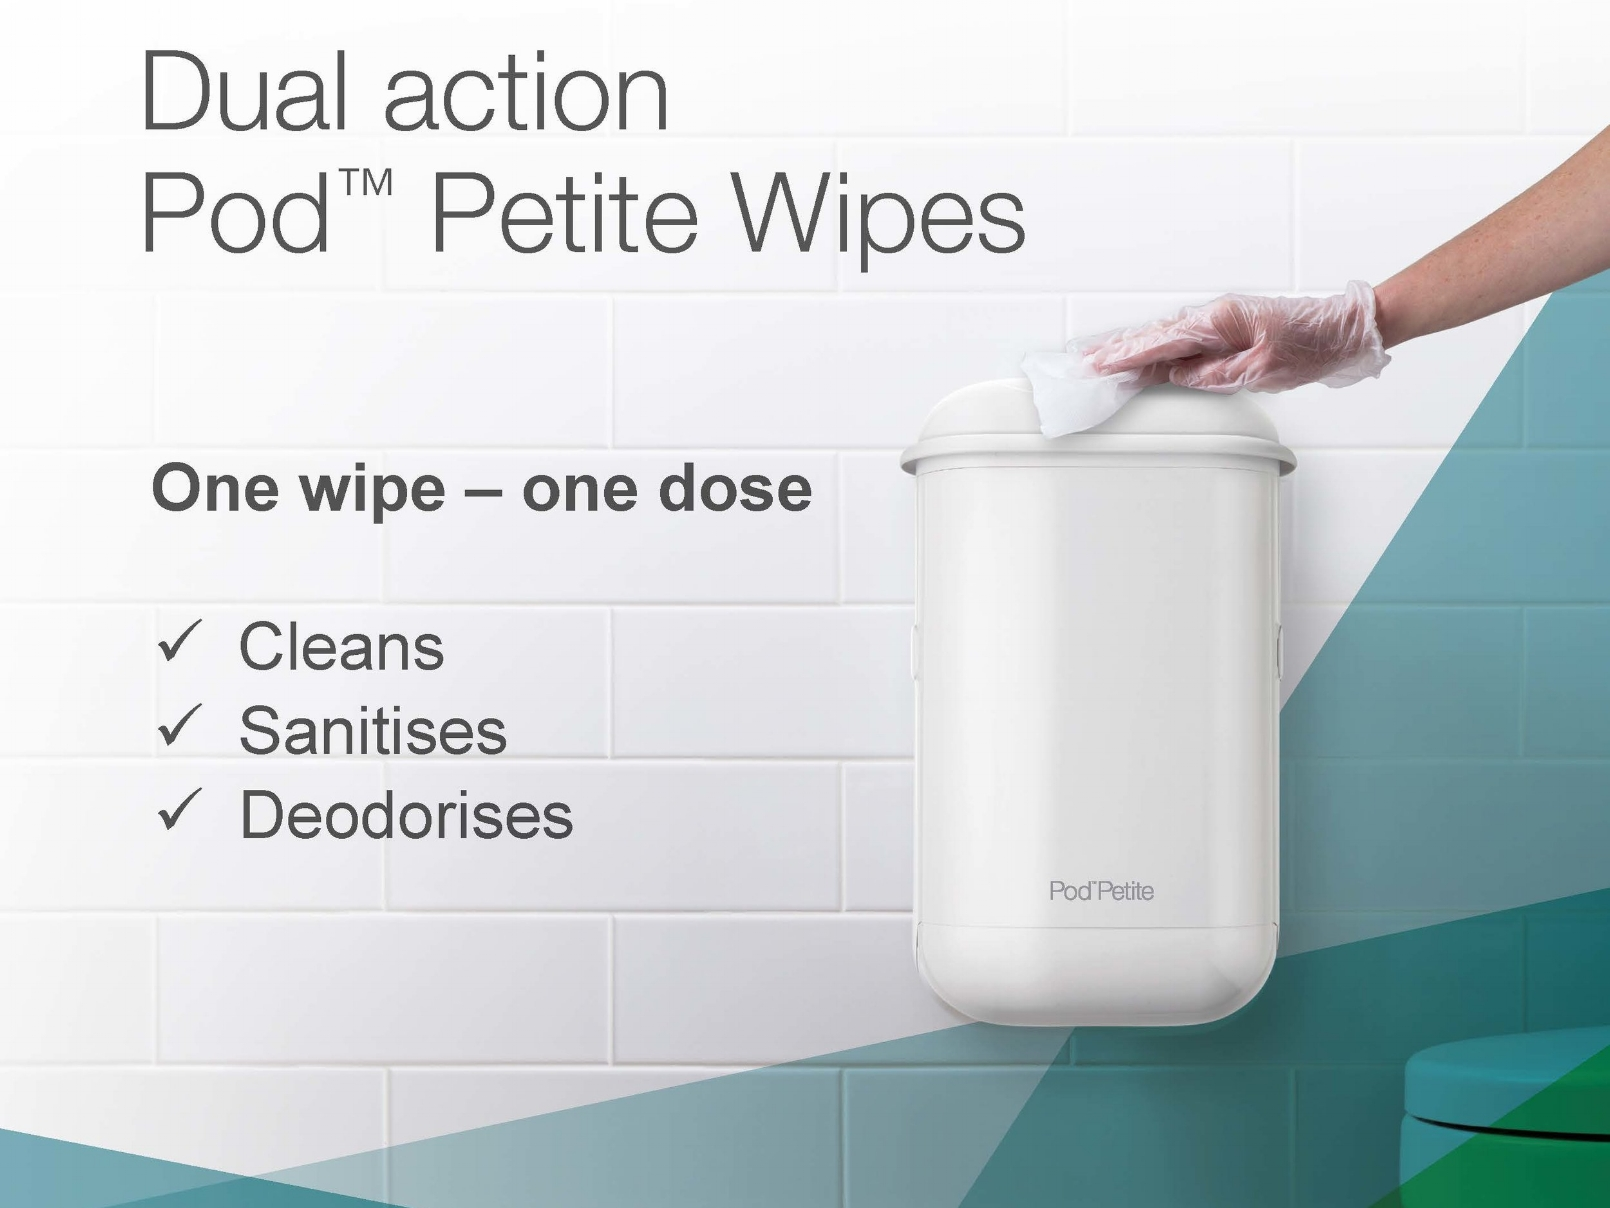 Dual action Pod Petite Wipes.jpg